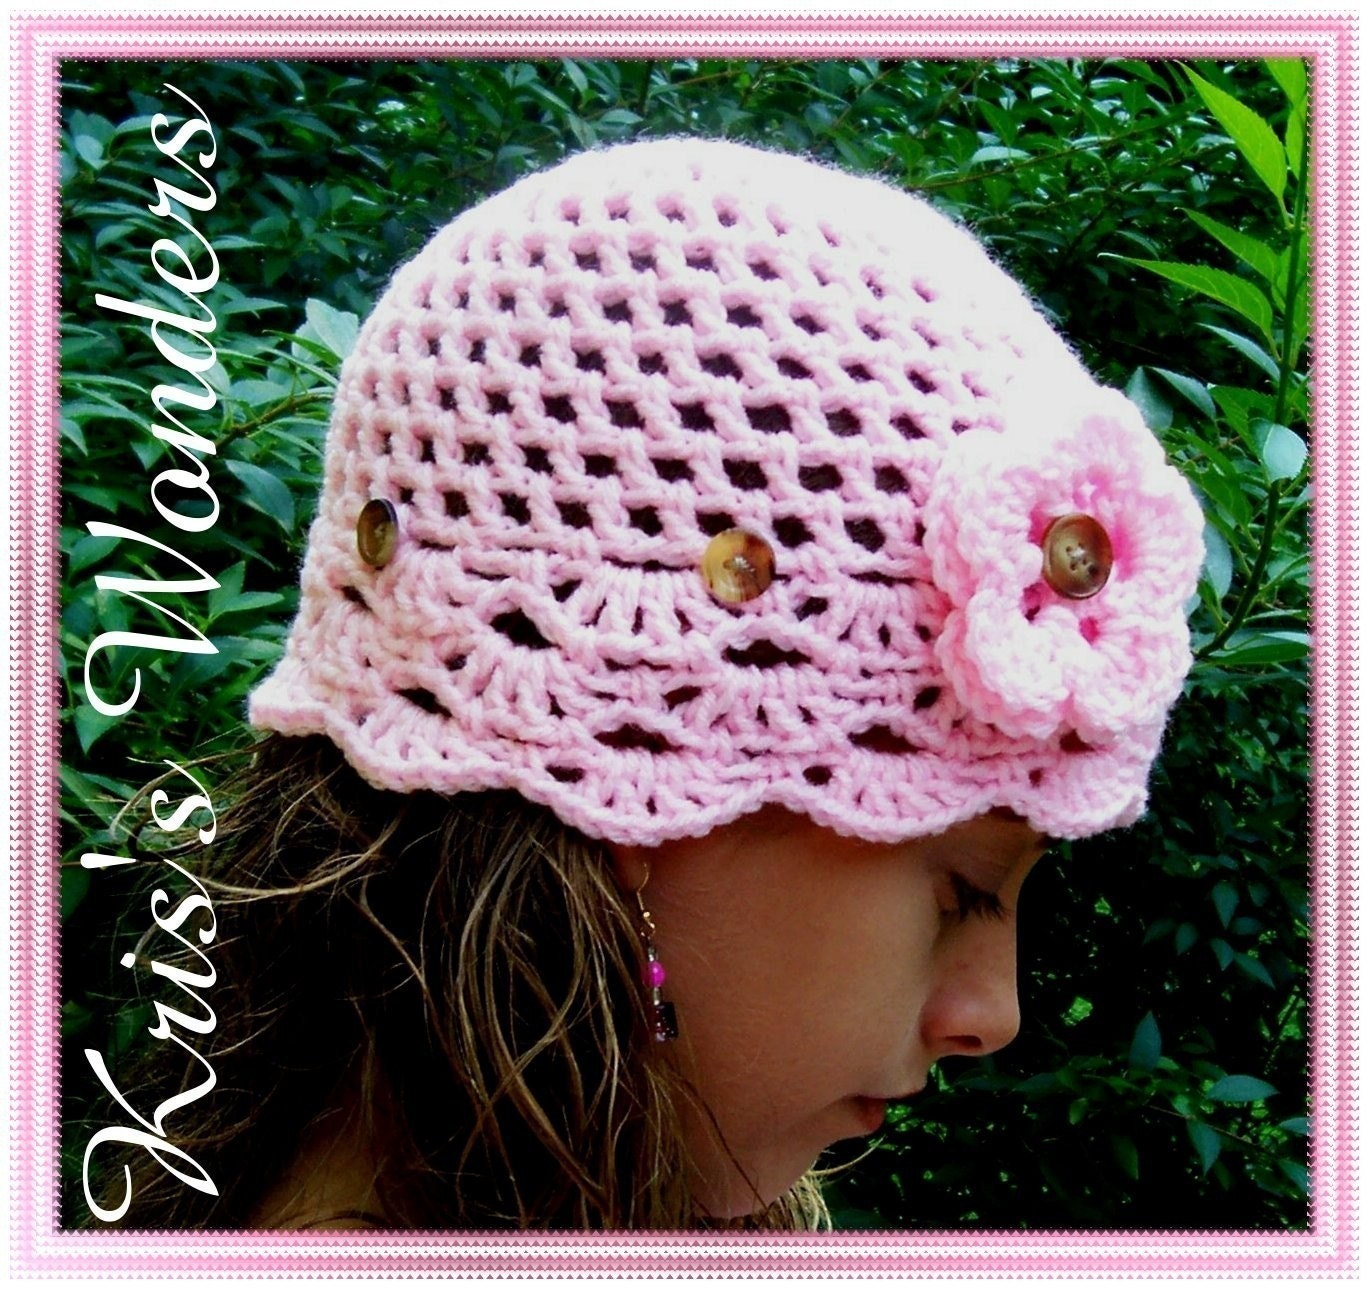 Crochet Pattern Sun Hat : Crochet Hat Pattern Sun Hat with Fan Edge Crochet Pattern